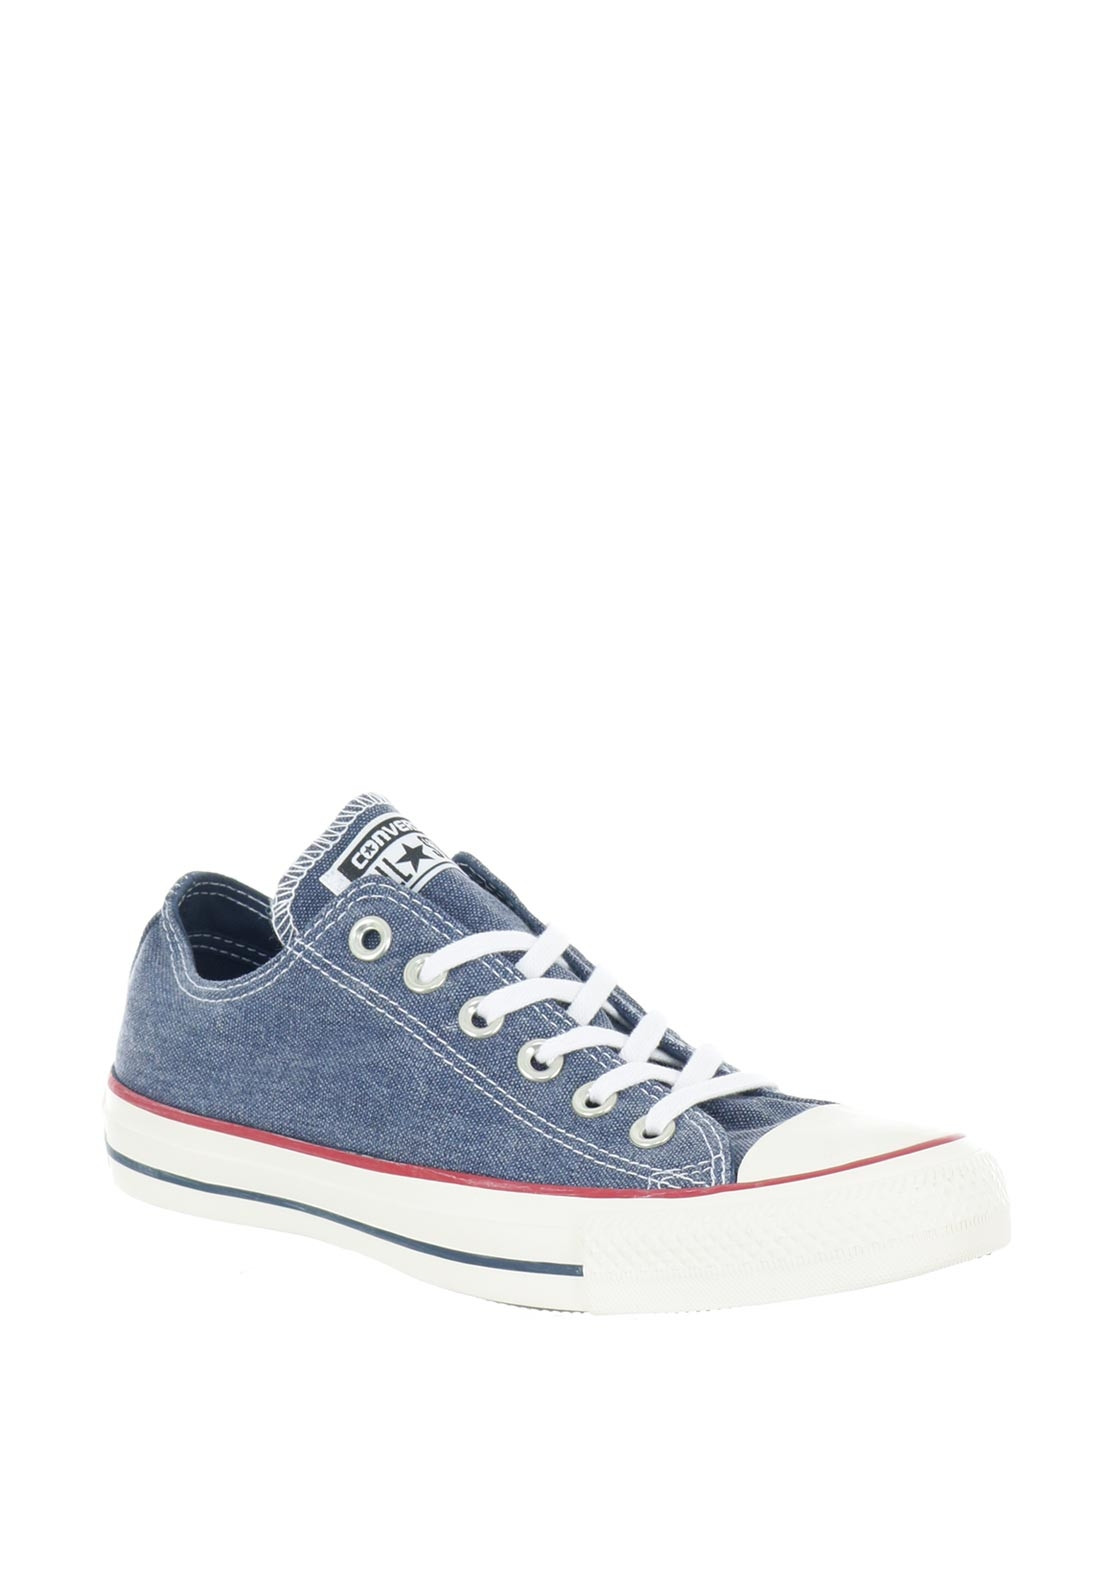 3a9576694eb6 low price converse womens chuck taylor ox floral print trainer denim 4d142  5f465  spain converse womens all star ox denim trainers blue 78537 0bd24